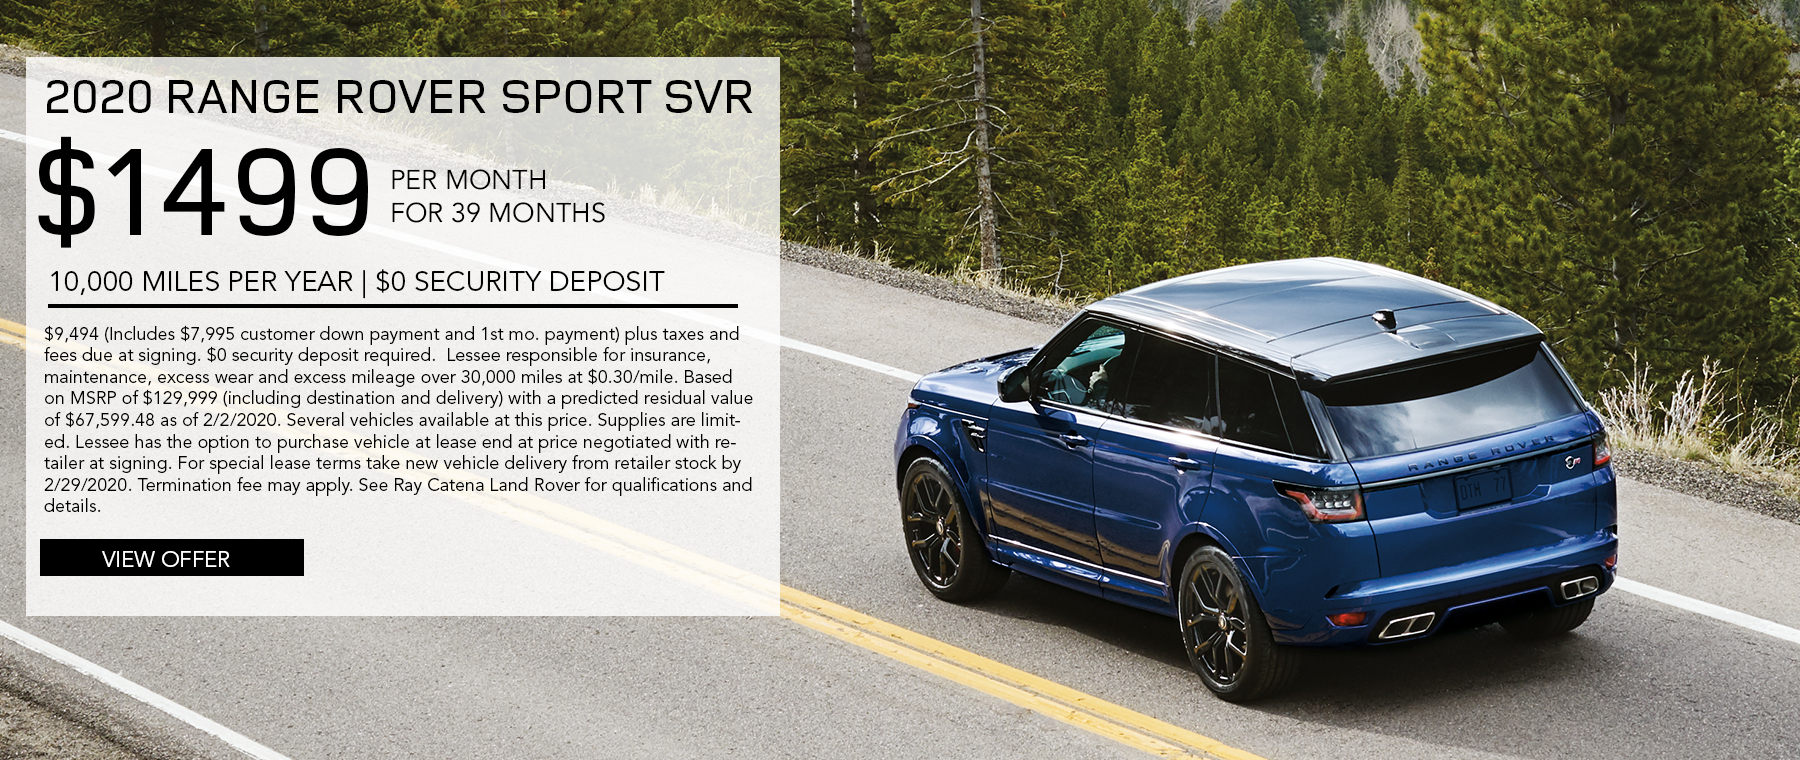 2020 Range Rover Sport SVR · $1,499/mo. · 39 mos. · 10,000 miles per year  $9,494 (Includes $7,995 customer down payment and 1st mo. payment) plus taxes and fees due at signing. $0 security deposit required.  Lessee responsible for insurance, maintenance, excess wear and excess mileage over 30,000 miles at $0.30/mile. Based on MSRP of $129,999 (including destination and delivery) with a predicted residual value of $67,599.48 as of 2/2/2020. Several vehicles available at this price. Supplies are limited. Lessee has the option to purchase vehicle at lease end at price negotiated with retailer at signing. For special lease terms take new vehicle delivery from retailer stock by 2/29/2020. Termination fee may apply. See Ray Catena Land Rover for qualifications and details. Click to view offer. Blue Range Rover Sport driving in road with trees around